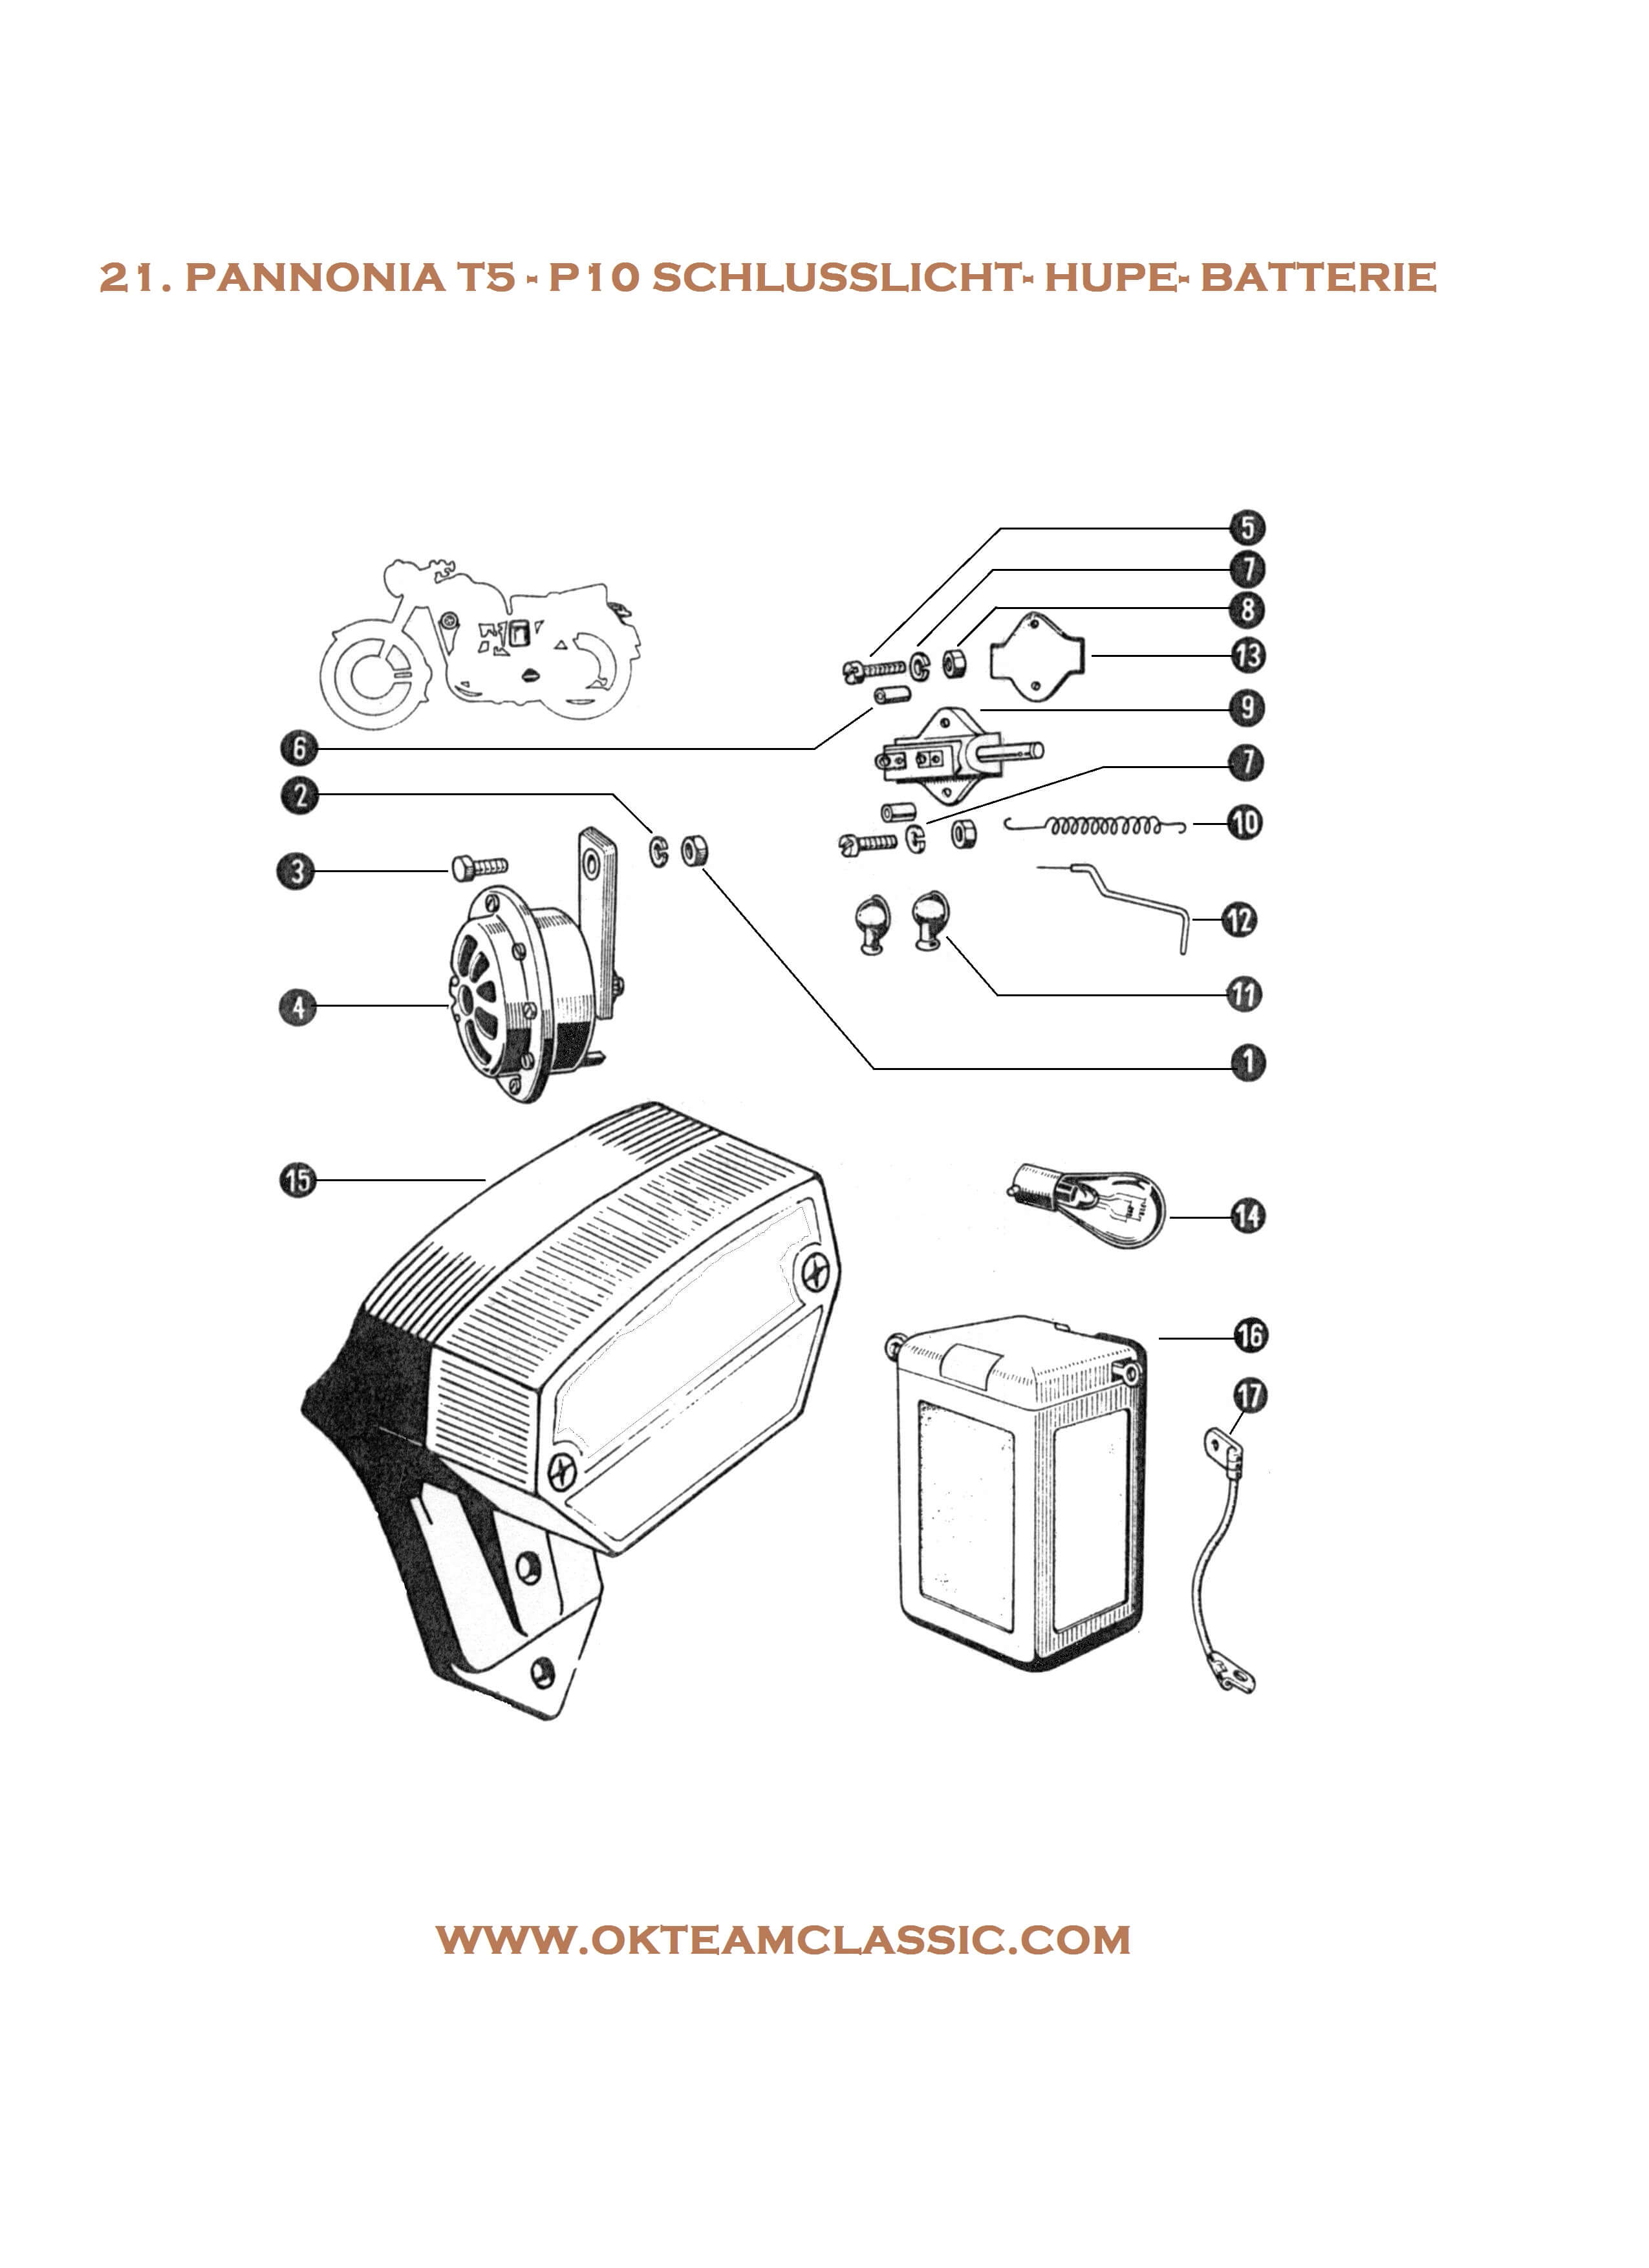 21. Tail light – horn – battery